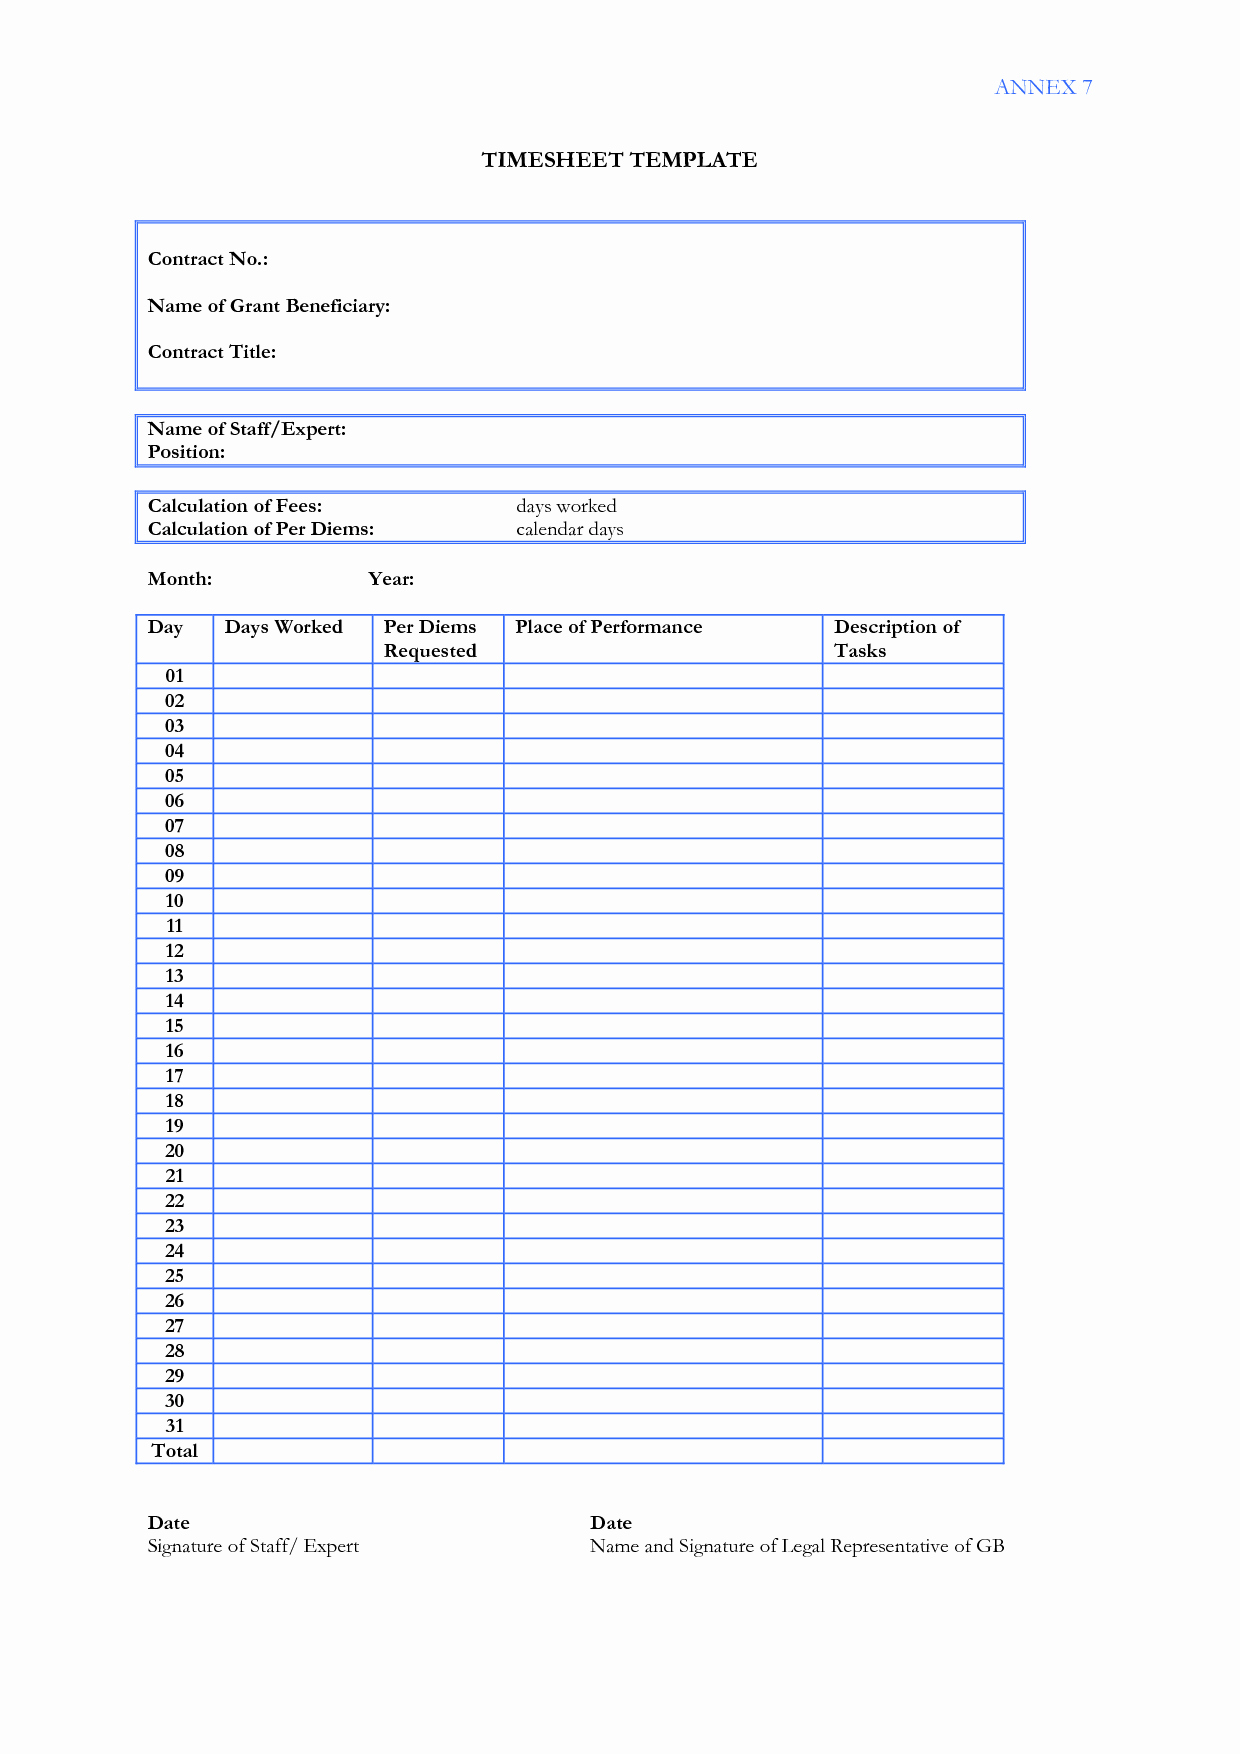 010 Timesheet Template Free Printable Of Best Time Sheets Templates - Timesheet Template Free Printable